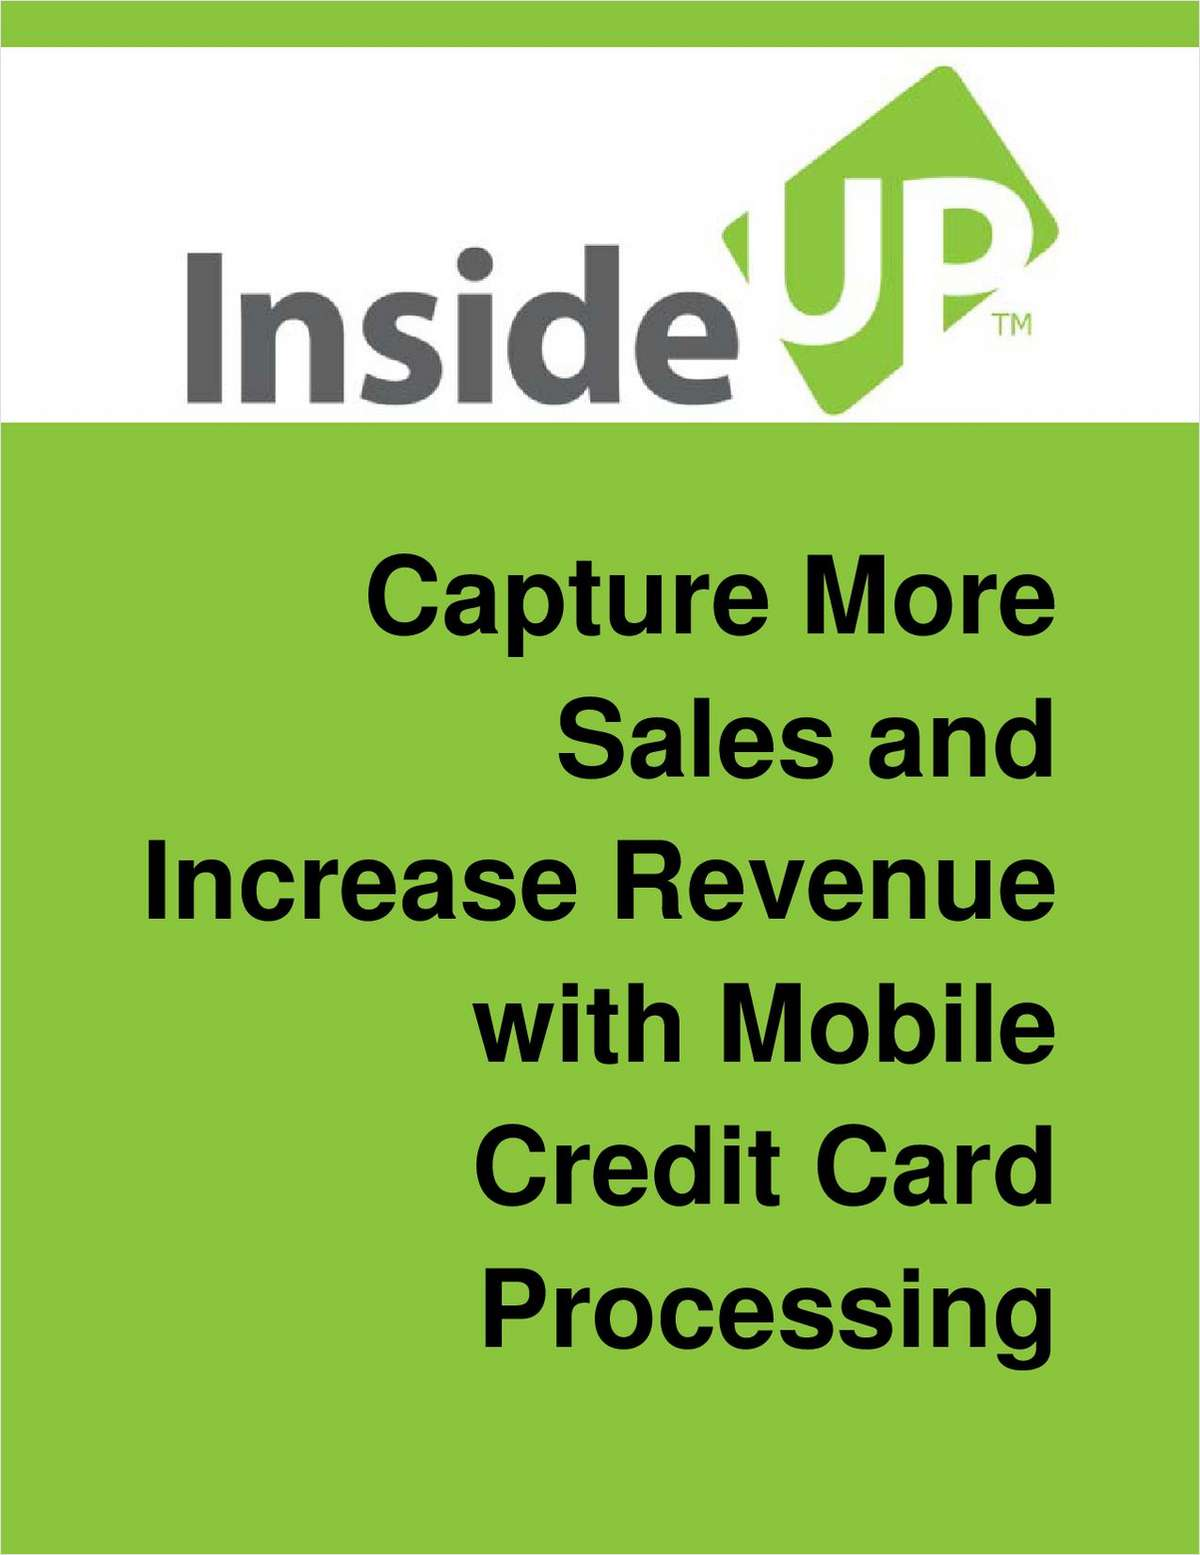 Using Mobile Credit Card Processing To Increase Your Sales